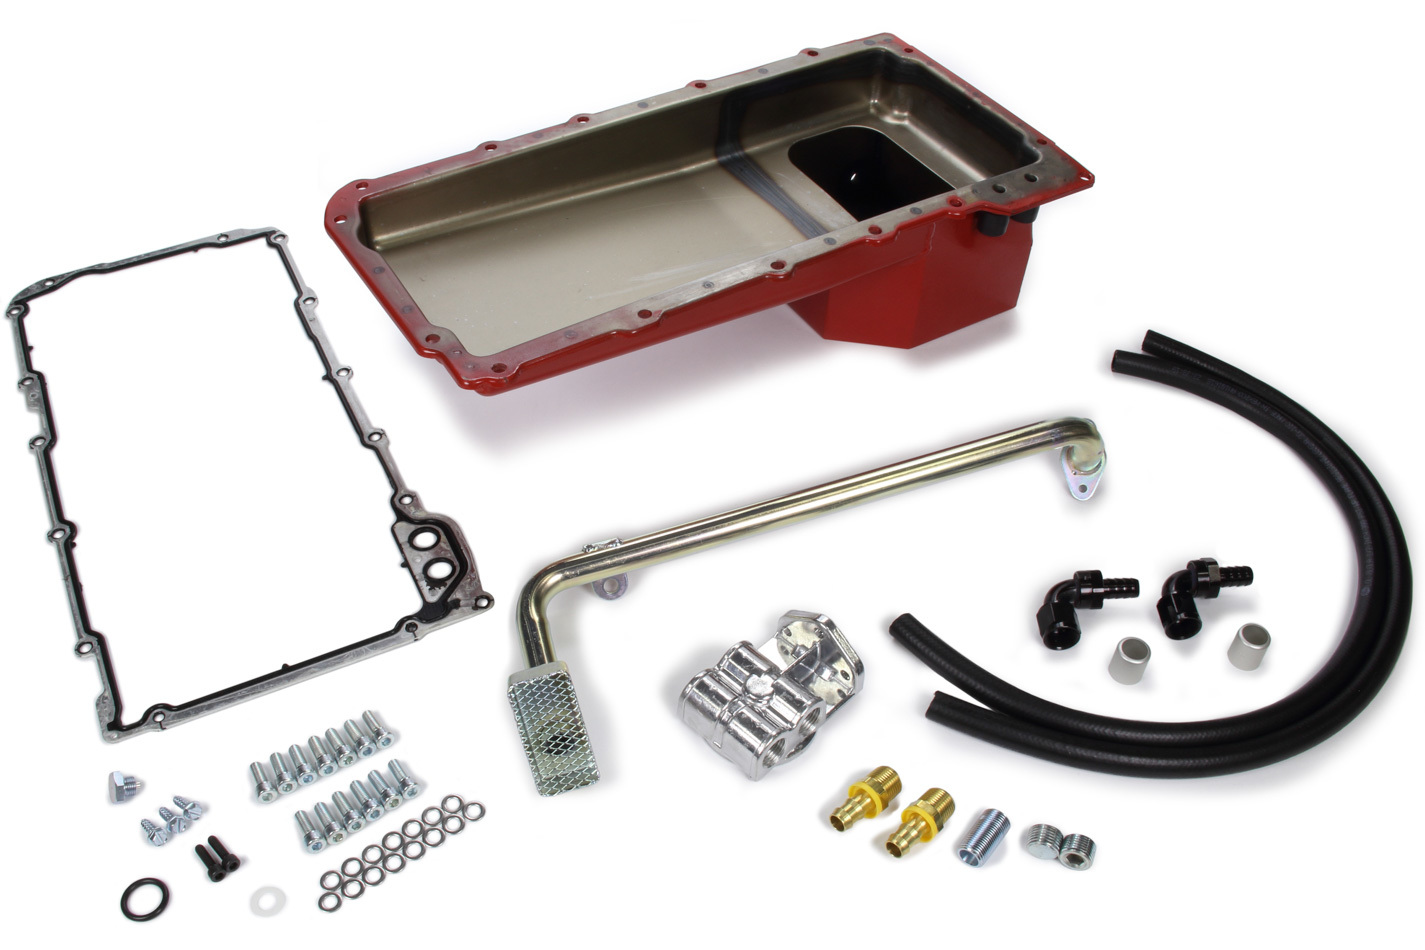 Trans Dapt 176 Engine Oil Pan Kit, Fabricated, Rear Sump, 5 qt, 6 in Deep, Single Filter, Horizontal Port, Gasket / Hardware / Oil Filter Relocation System / Pickup, Steel, Red Paint, GM LS-Series, GM F-Body 1967-69, Kit